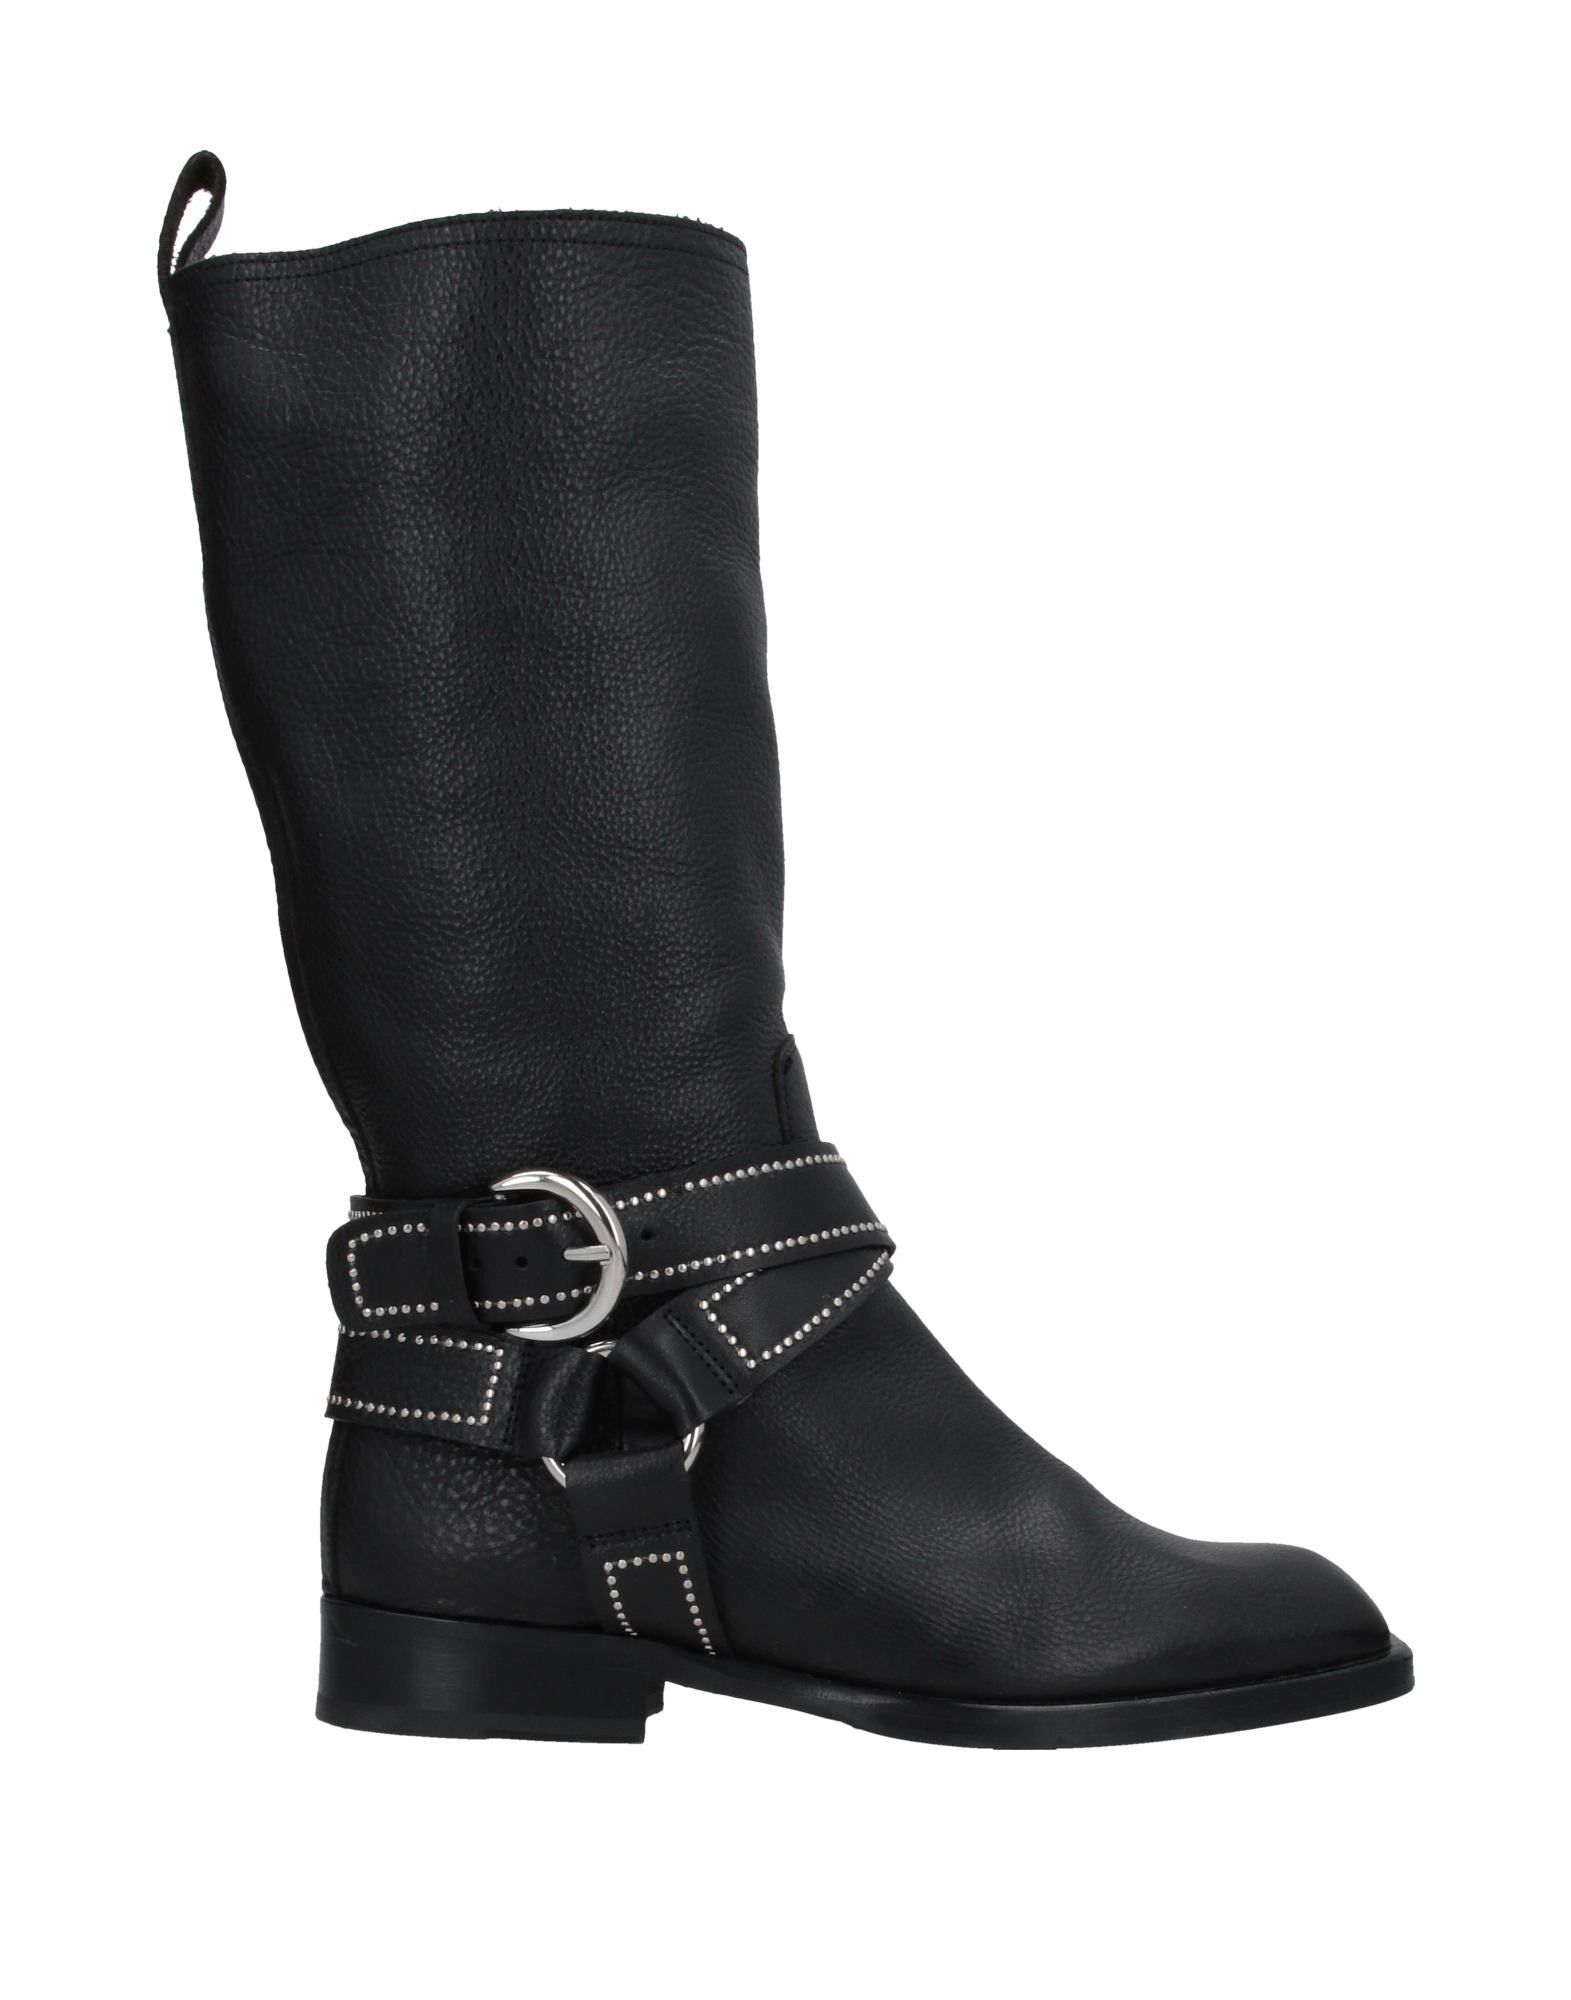 DONDUP Boots. textured leather, metal applications, buckle, solid color, square toeline, square heel, leather lining, leather/rubber sole, contains non-textile parts of animal origin, large sized. Soft Leather